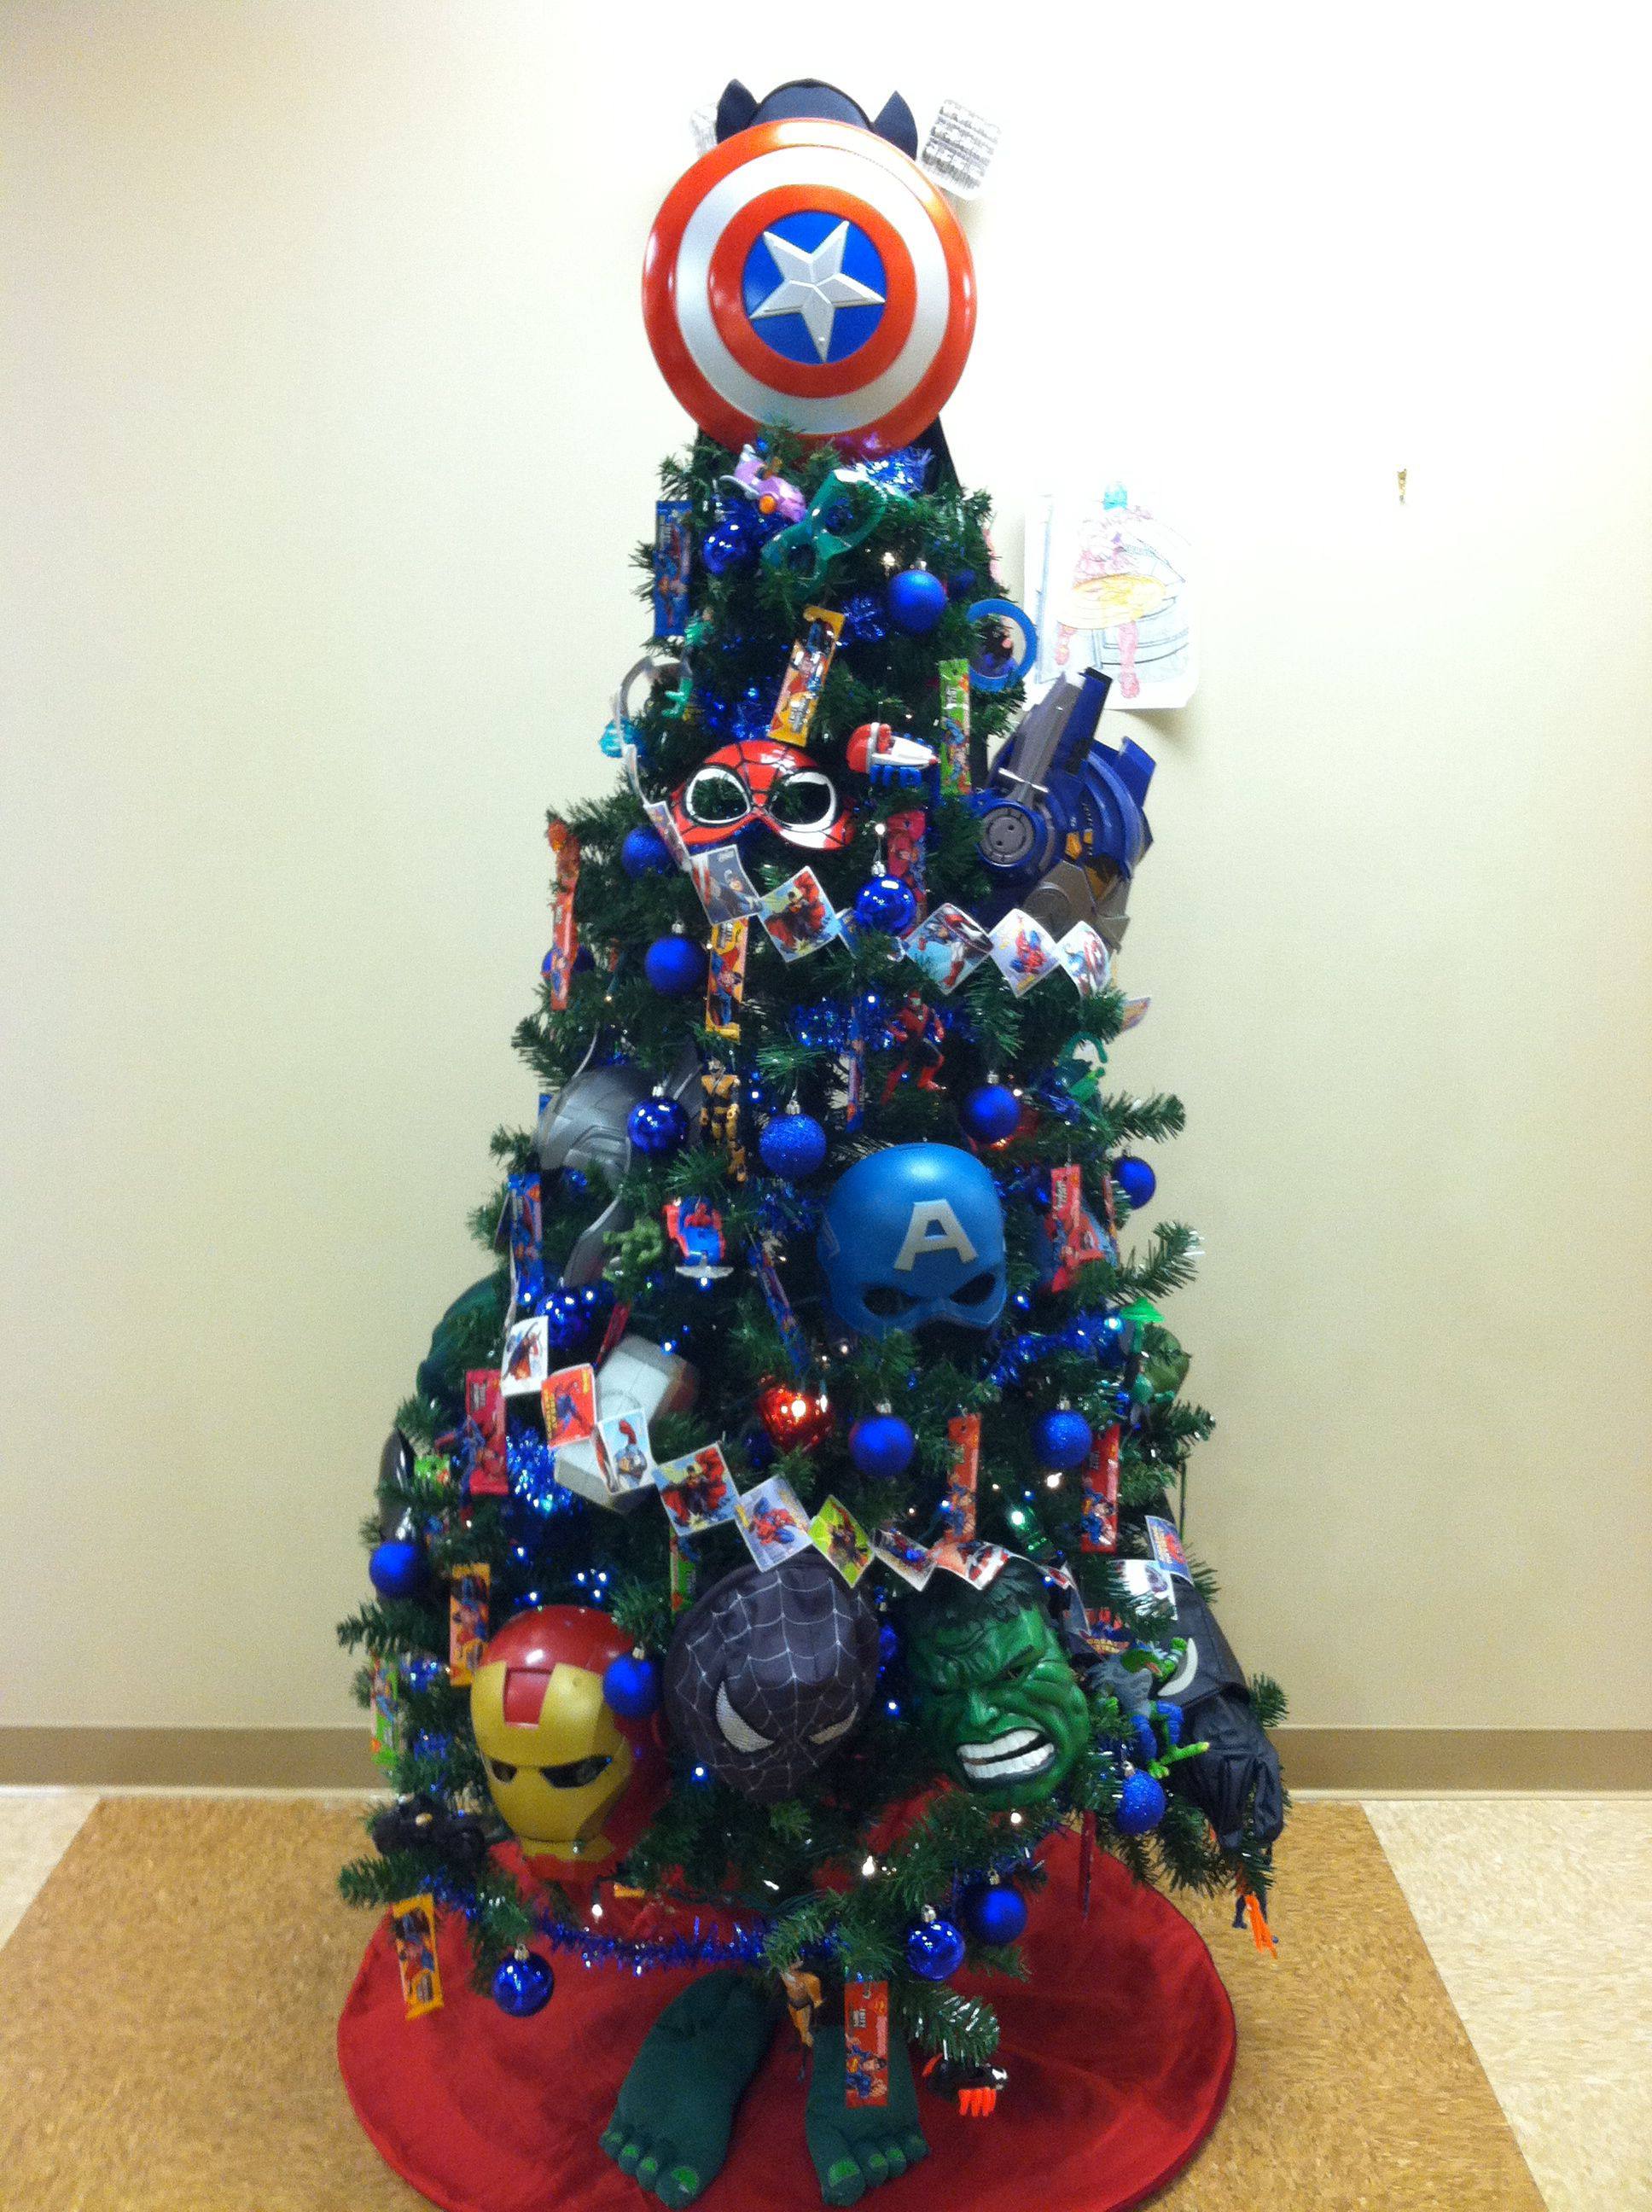 Super Hero Christmas Tree For The Pooh And The Netta We Ll Add A Thor Hammer For The Beth Superhero Christmas Christmas Tree Themes Kids Christmas